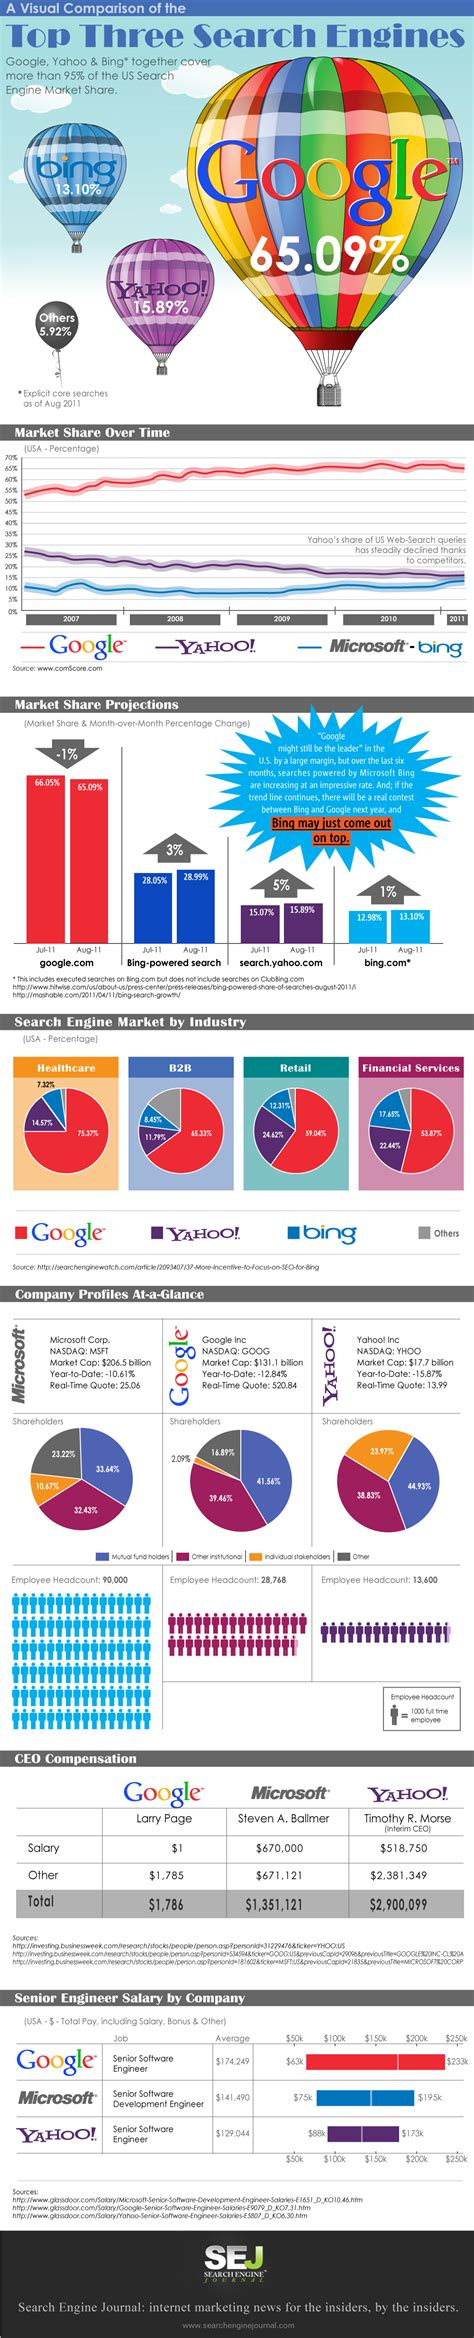 Top Search Engines For Infographic The Top Three Us Search Engines